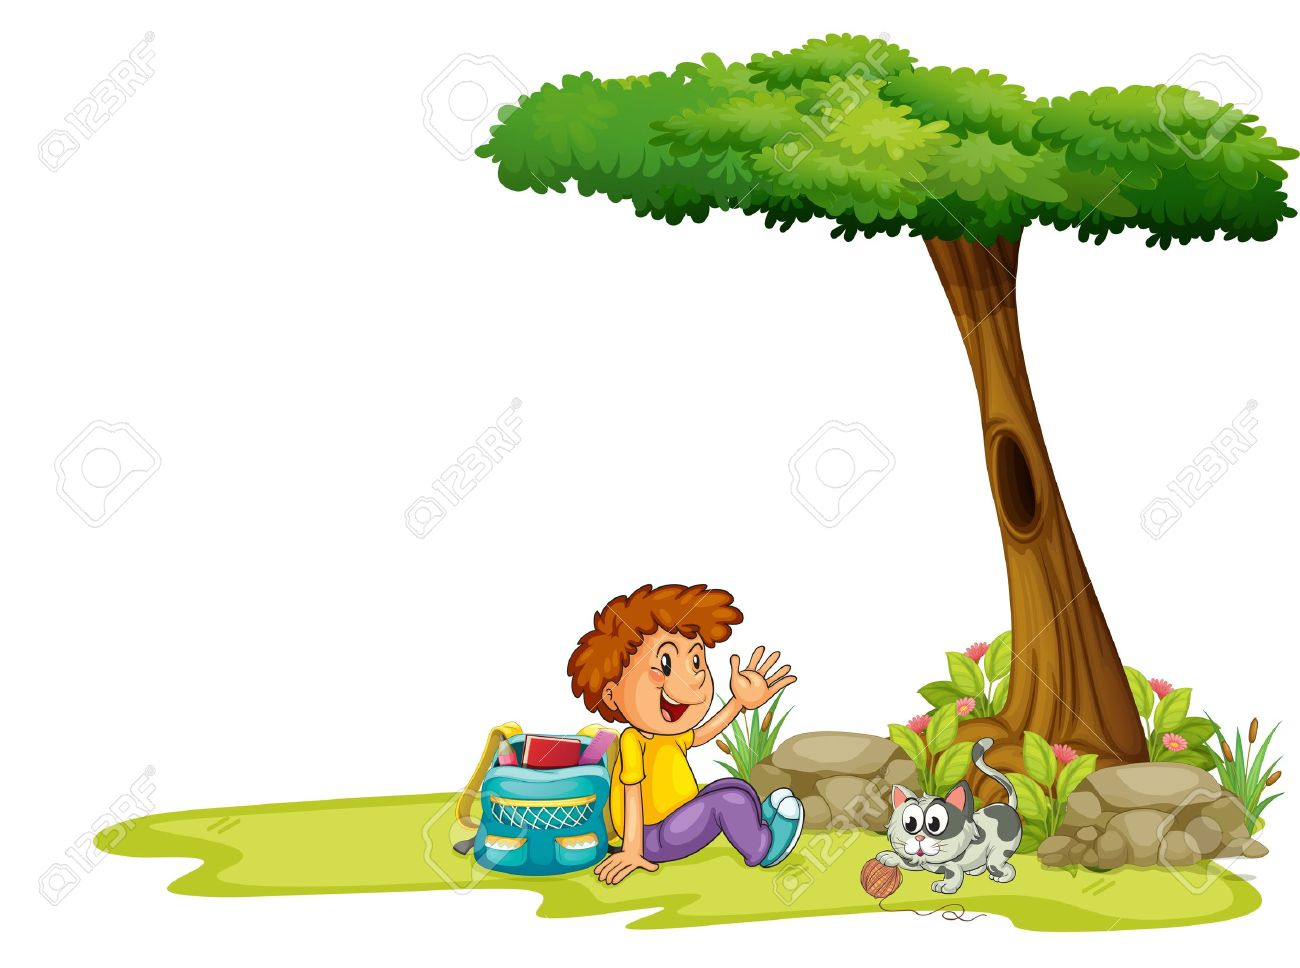 Illustartion Of A Boy And His Cat Under The Tree On A White.